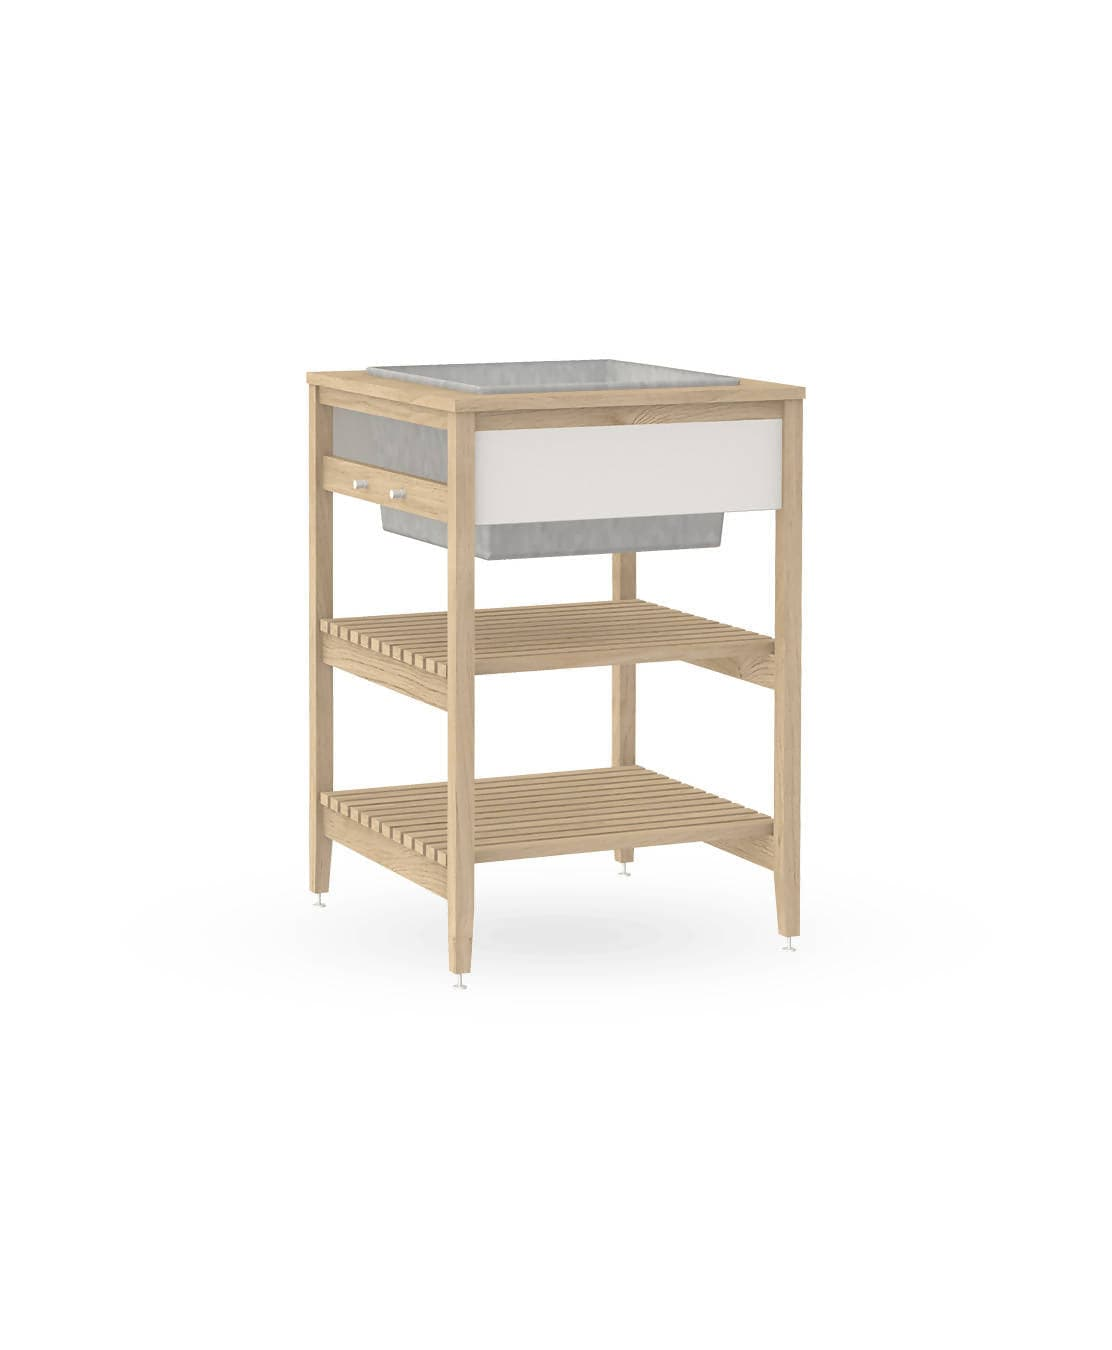 Radix Urban Planter (White Oak)